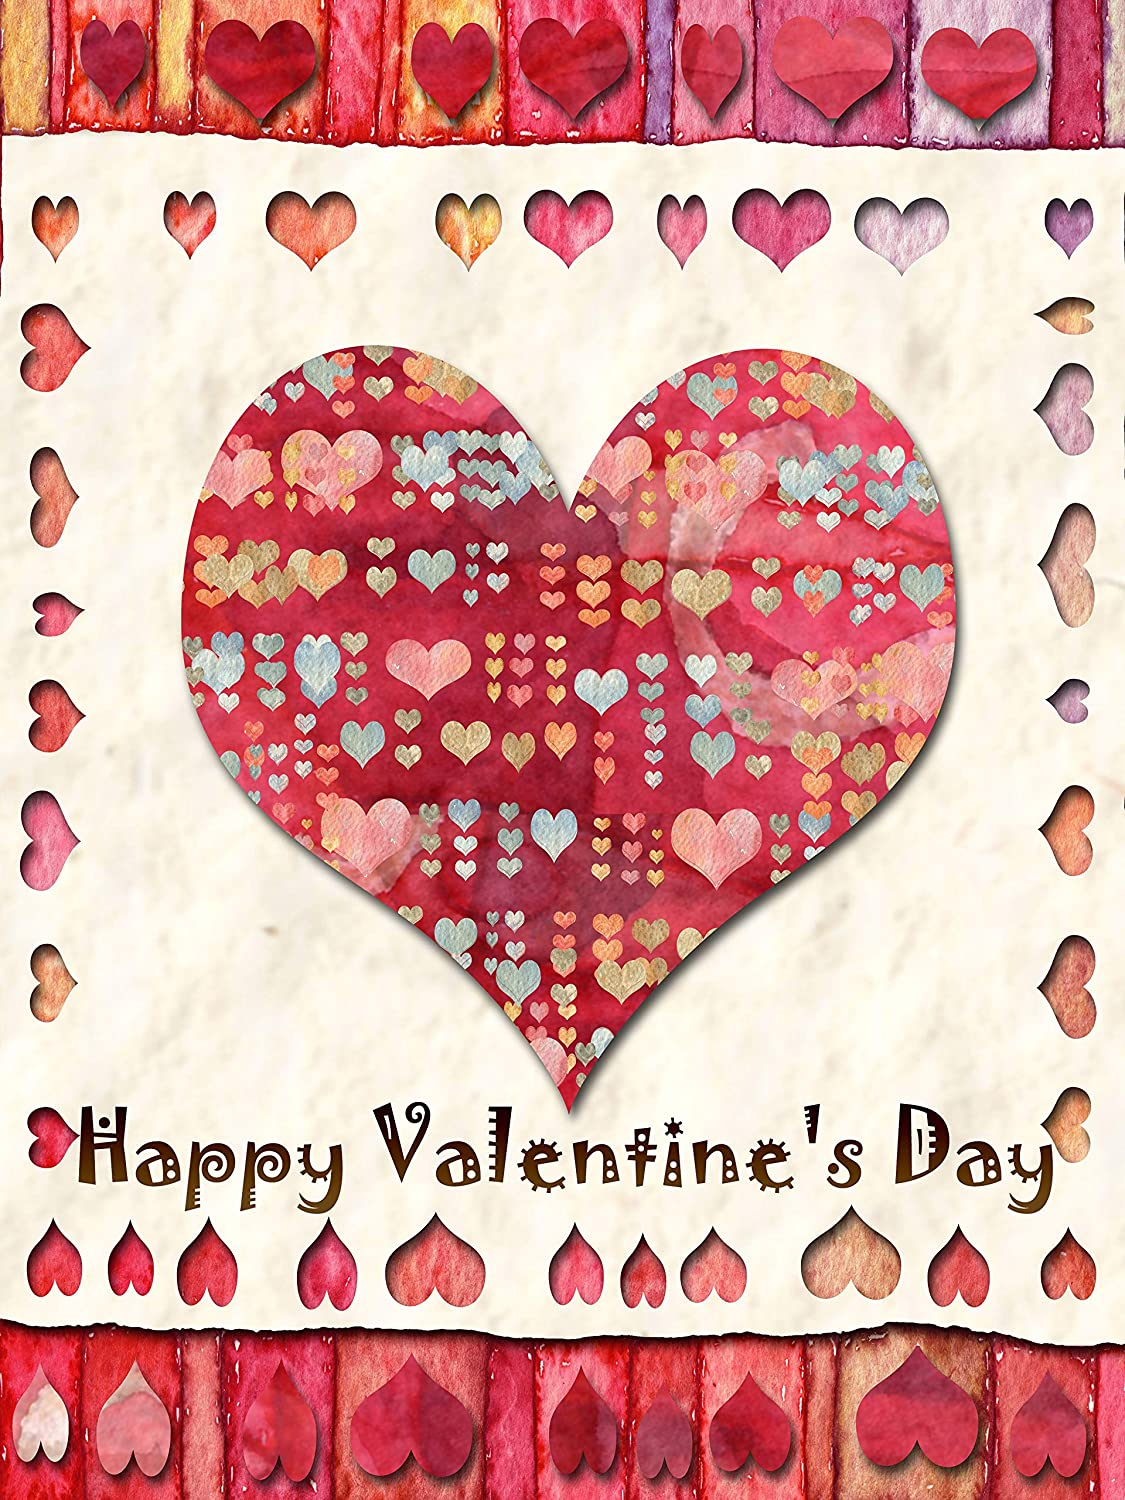 12 x 18 Inches Double Sided Artist Rendered /& Weather Resistant Love Heart Valentine Day Outdoor Yard Decor Small Joyousa Valentines Day Garden Flag